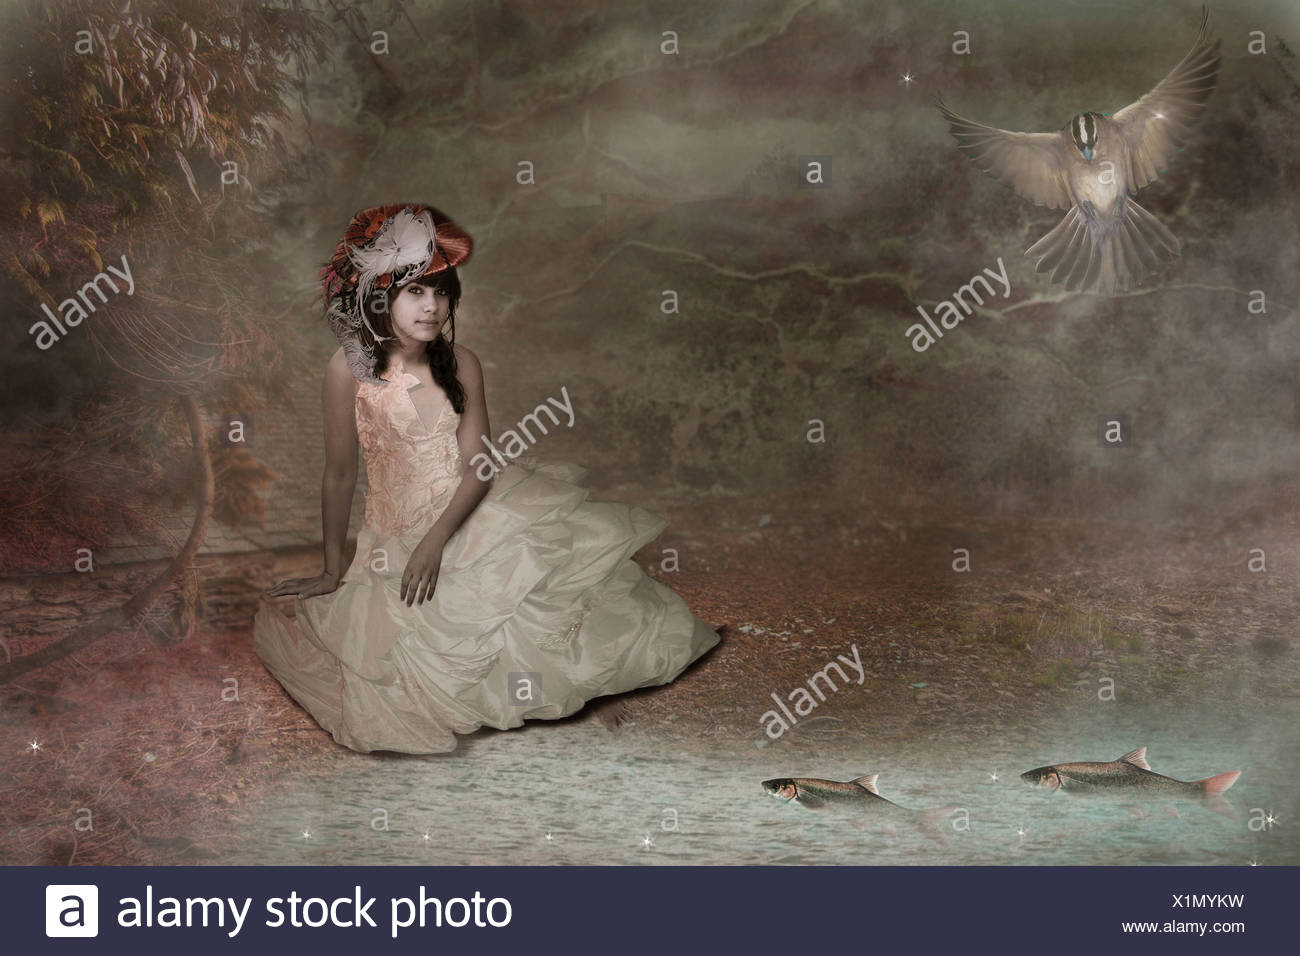 young woman sitting by a pond wearing old fashioned dress Stock Photo